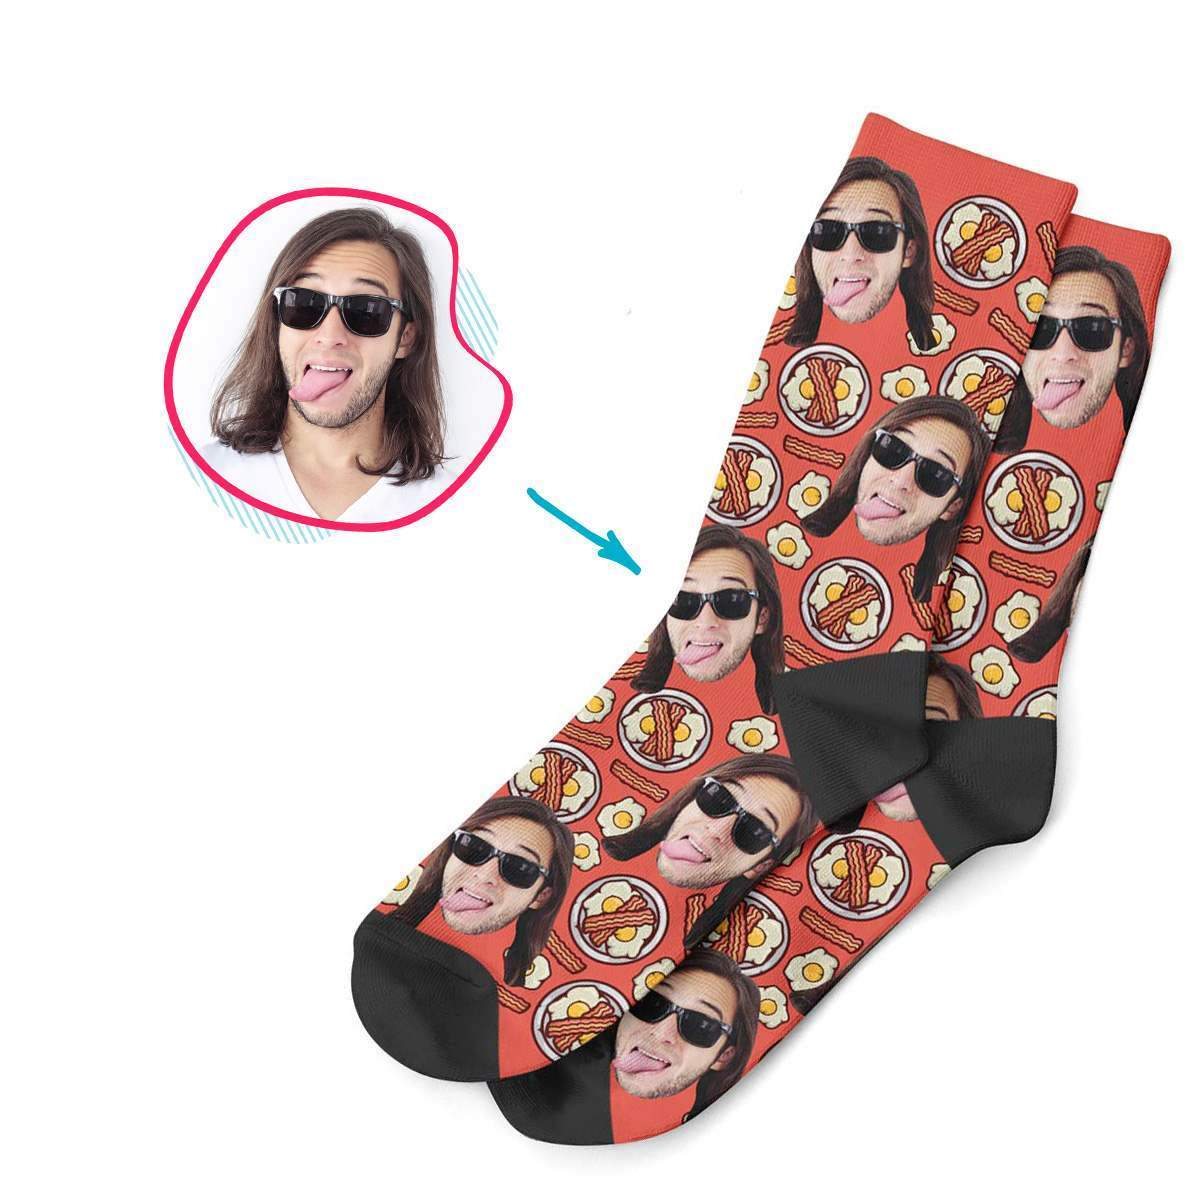 red Bacon and Eggs socks personalized with photo of face printed on them